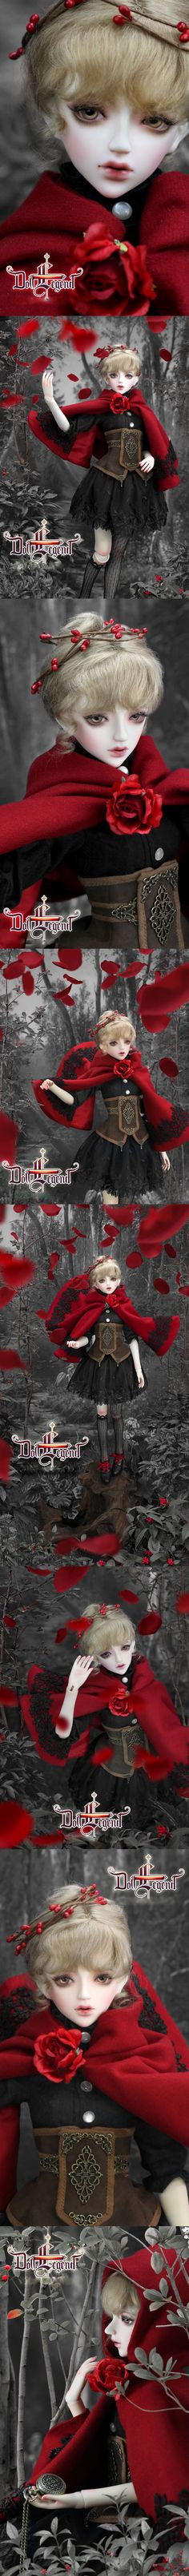 BJD 55cm Celia Girl Ball-jointed doll_58cm-63cm doll_Doll Legend_DOLL_Ball Jointed Dolls (BJD) company-Legenddoll